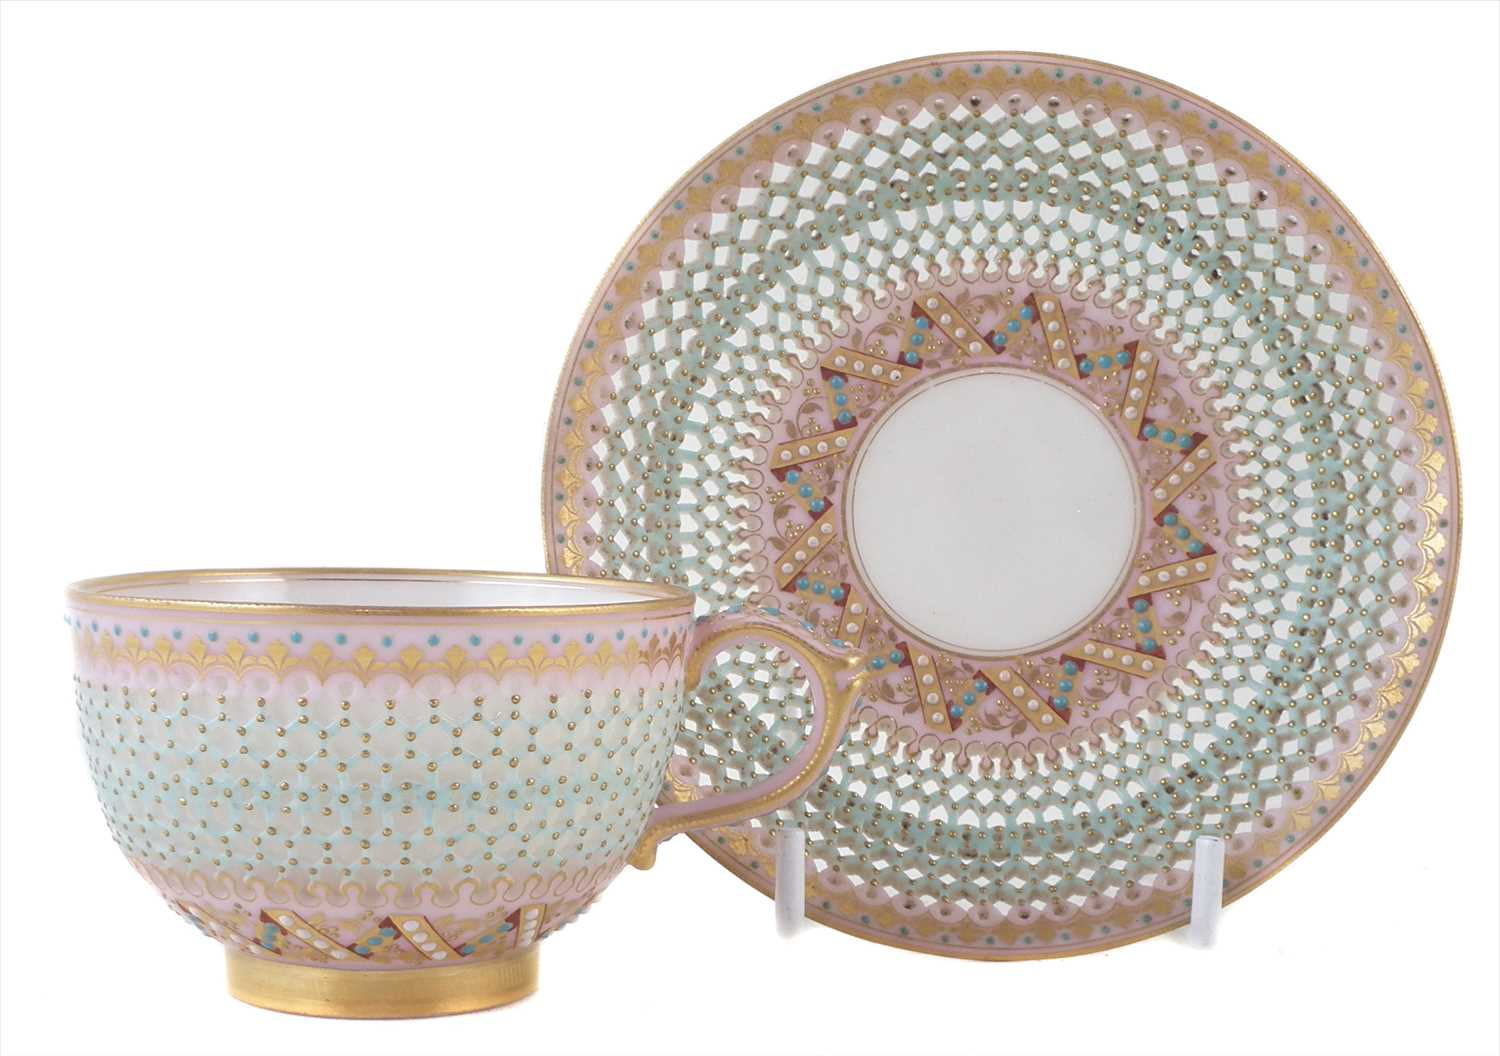 162 - Royal Worcester reticulated cup and saucer by George Owen,